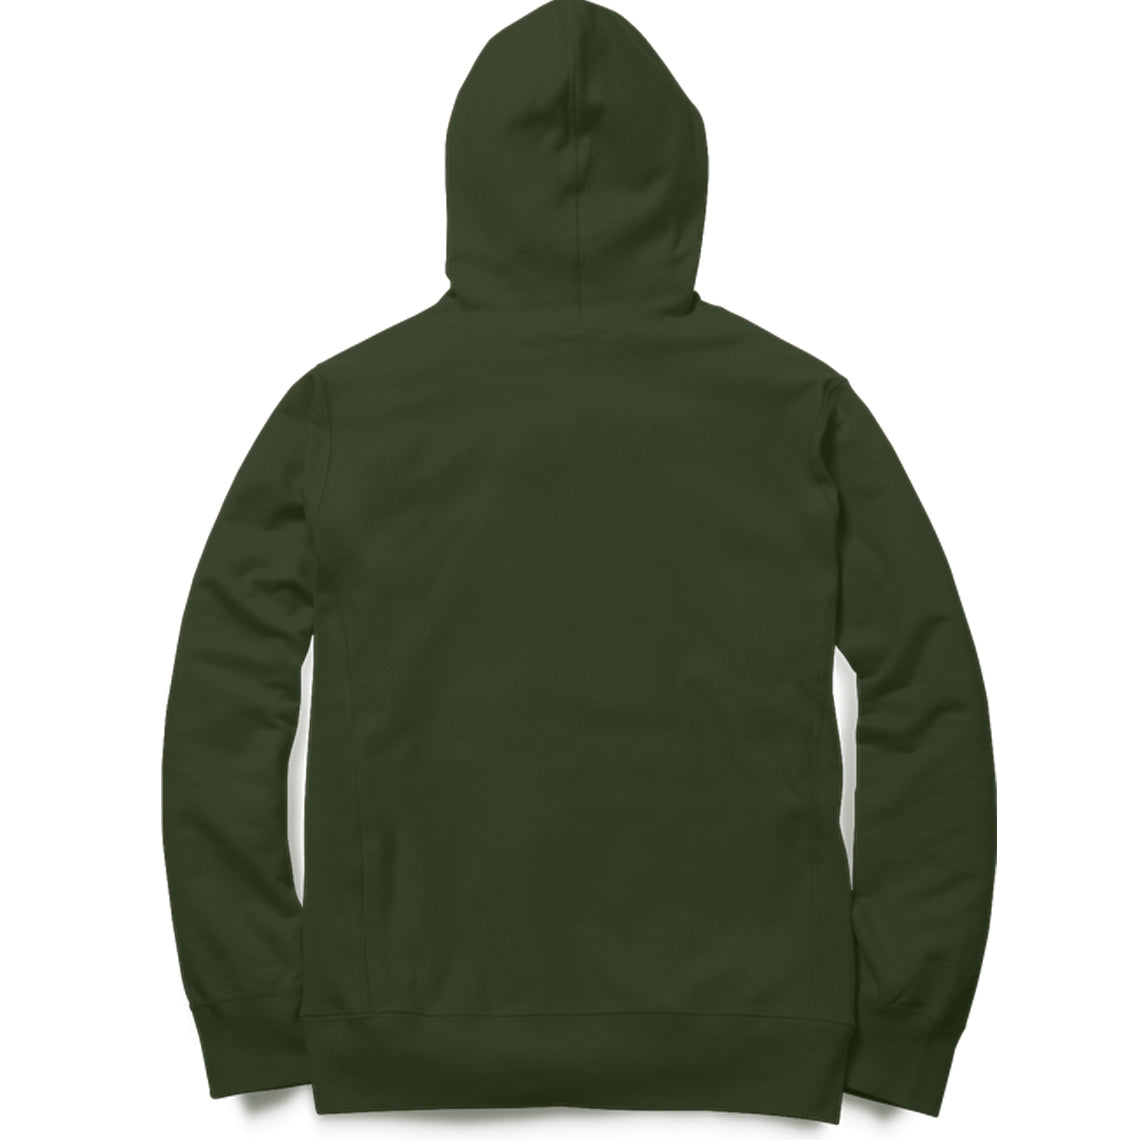 Baromin Hoodies - Bottle Green